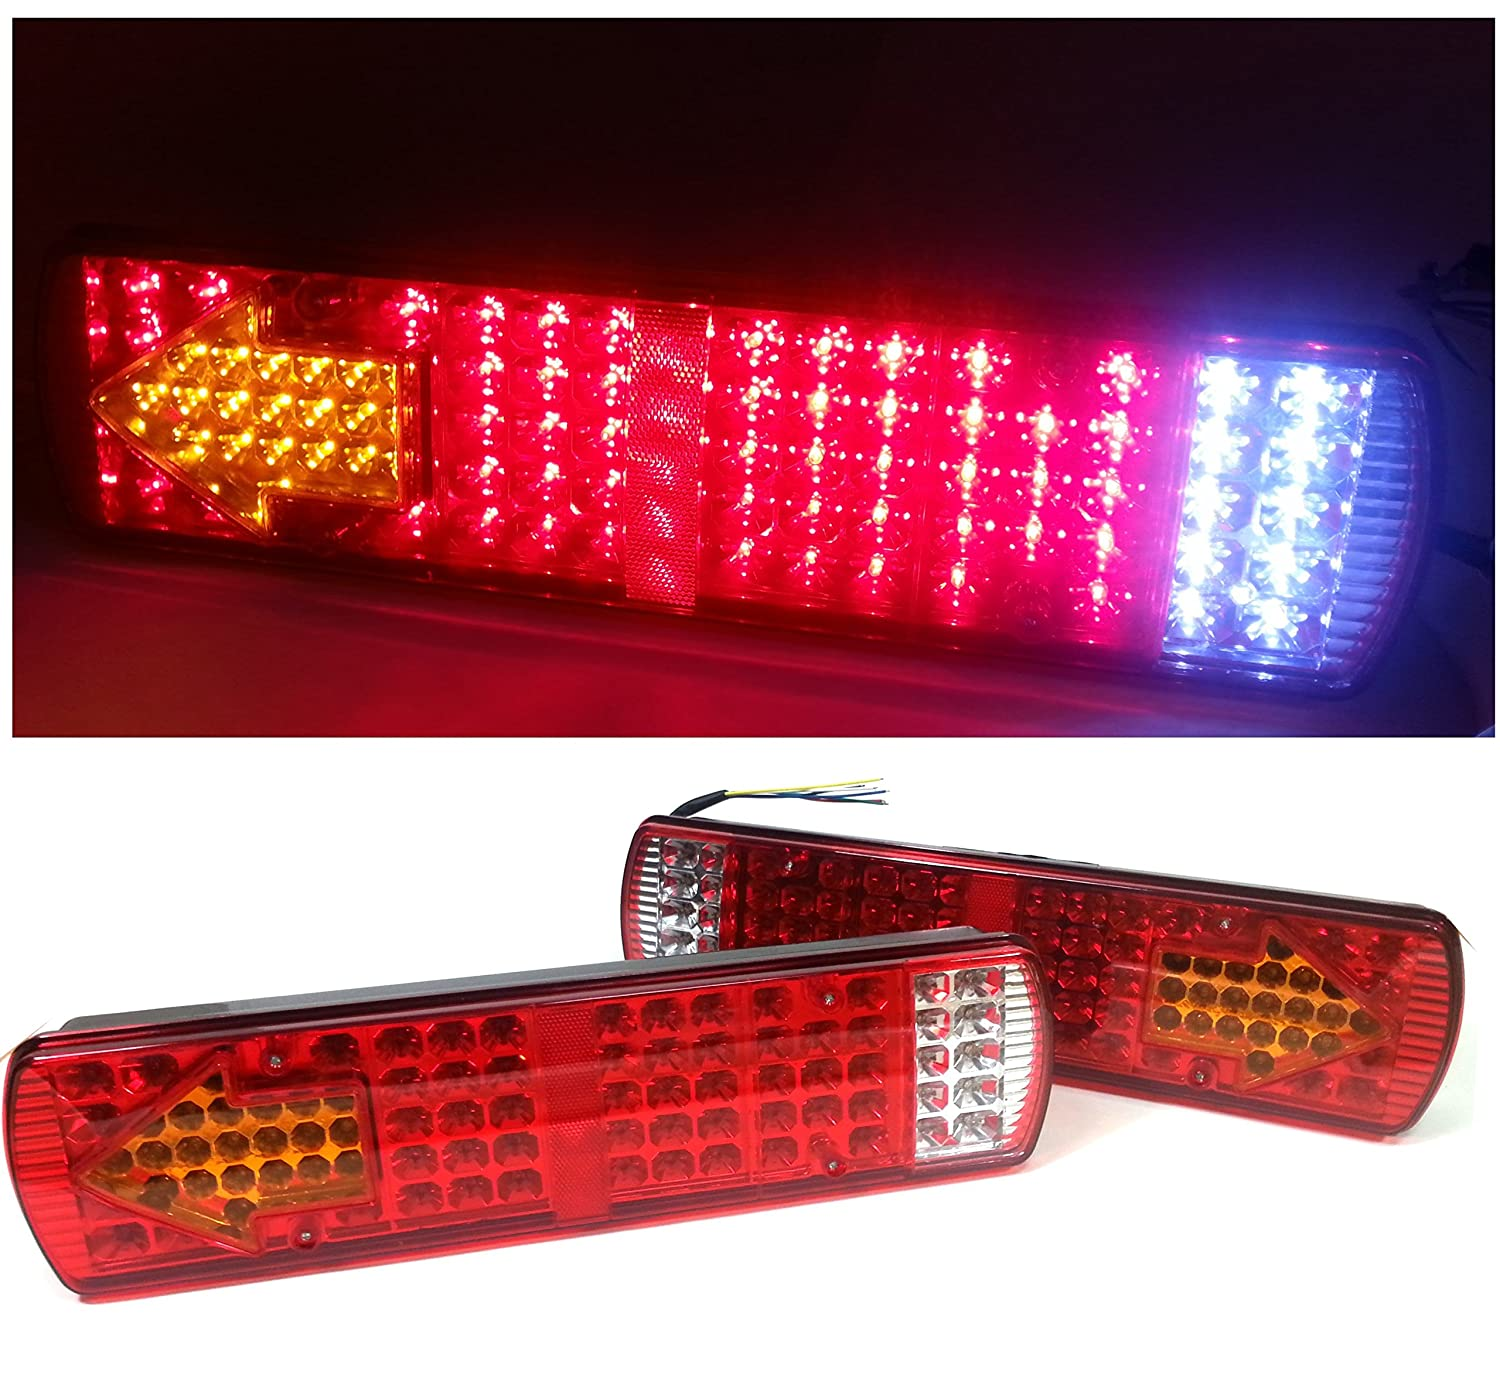 2 X PAIR OF 12V 84 LEDS LED MULTIFUNCTION STOP REVERSE TURN SIGNAL INDICATOR FOG REAR TAIL LIGHTS LAMPS FOR TRUCK TRAILER LORRY SHASSIS TIPPER CARAVAN MOTORHOMES CAMPER NONE